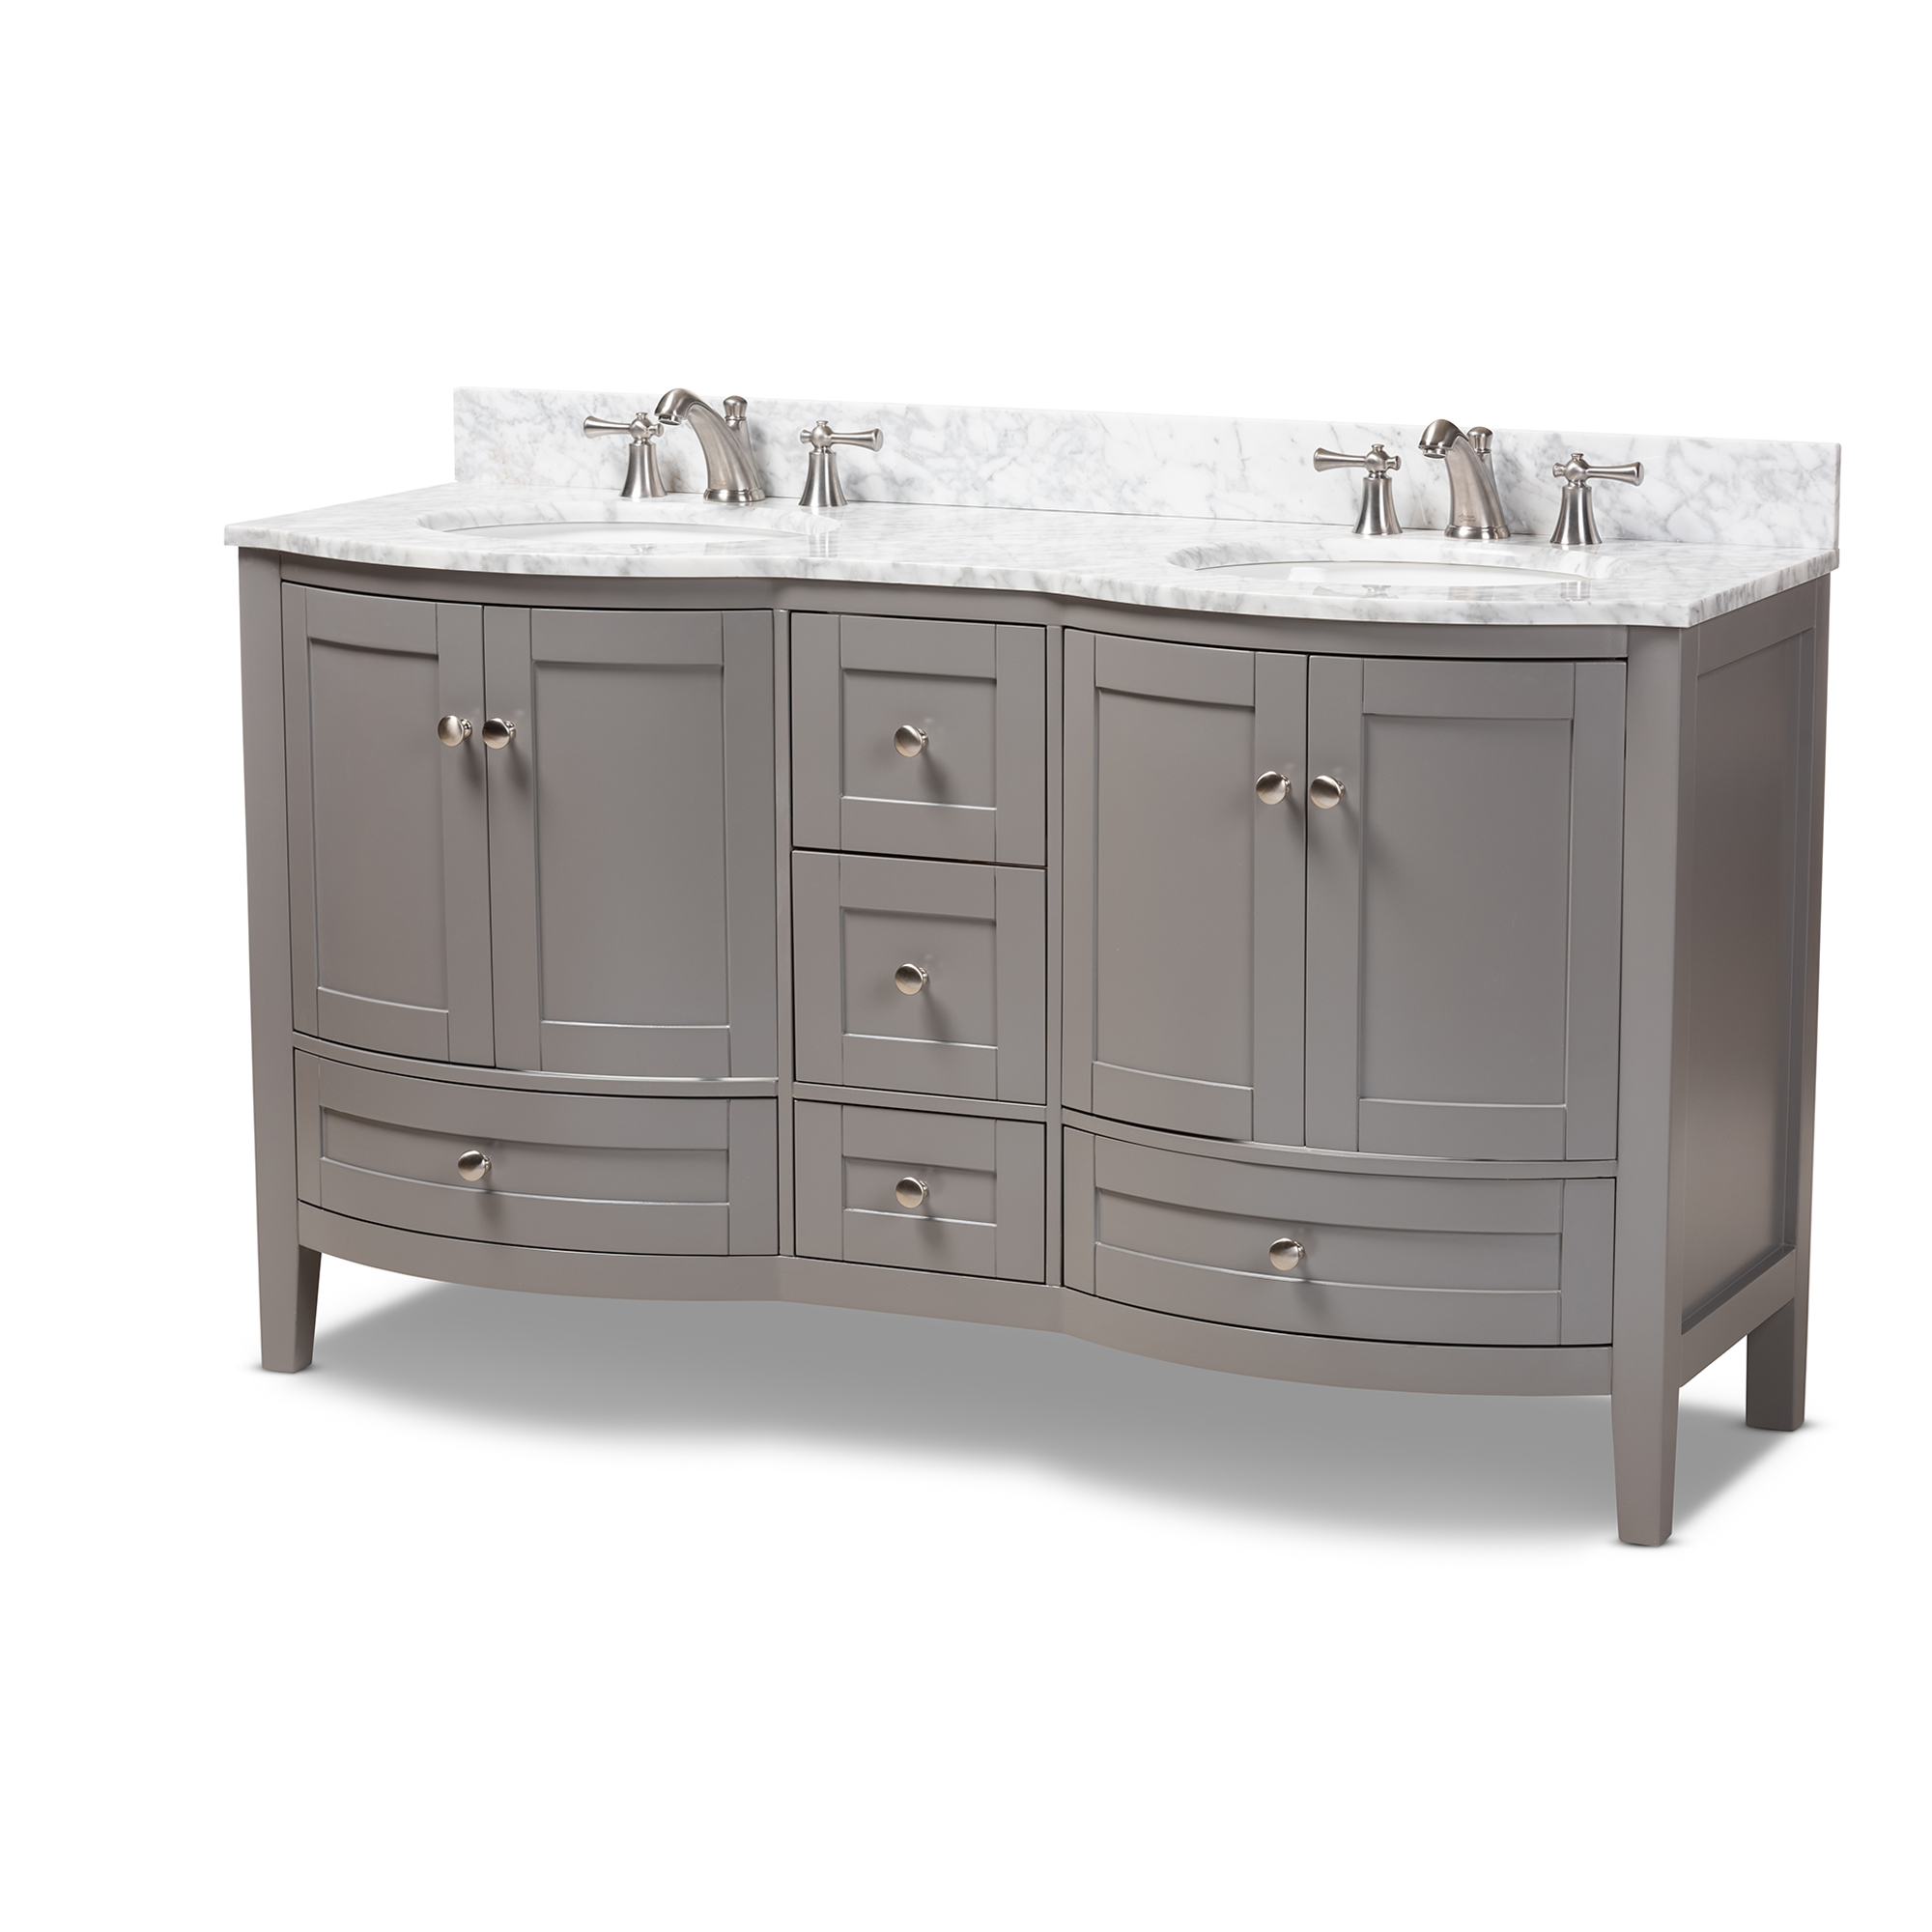 ... Baxton Studio Nicole 60 Inch Transitional Grey Finished Wood And Marble  Double Sink Bathroom Vanity ...